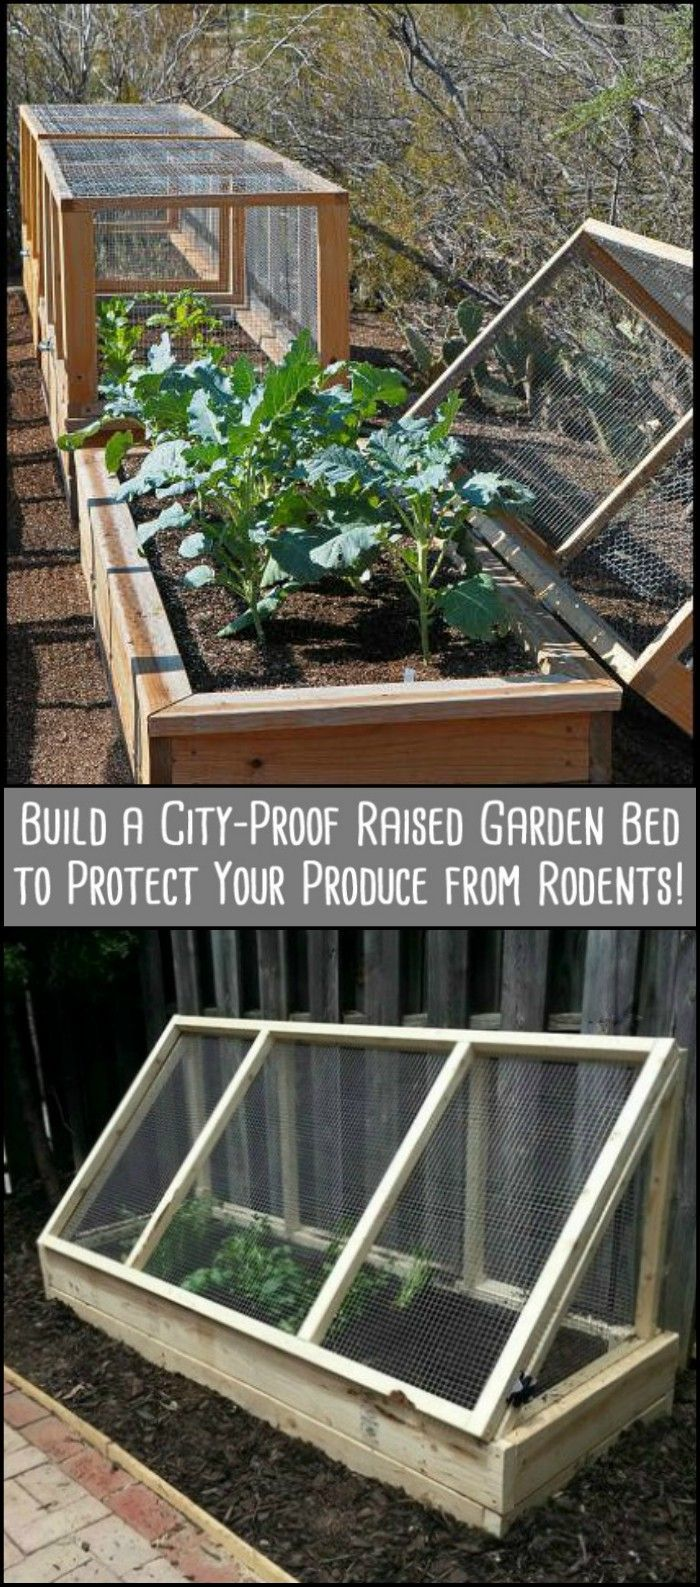 Build a cityproof garden to protect your produce from rodents